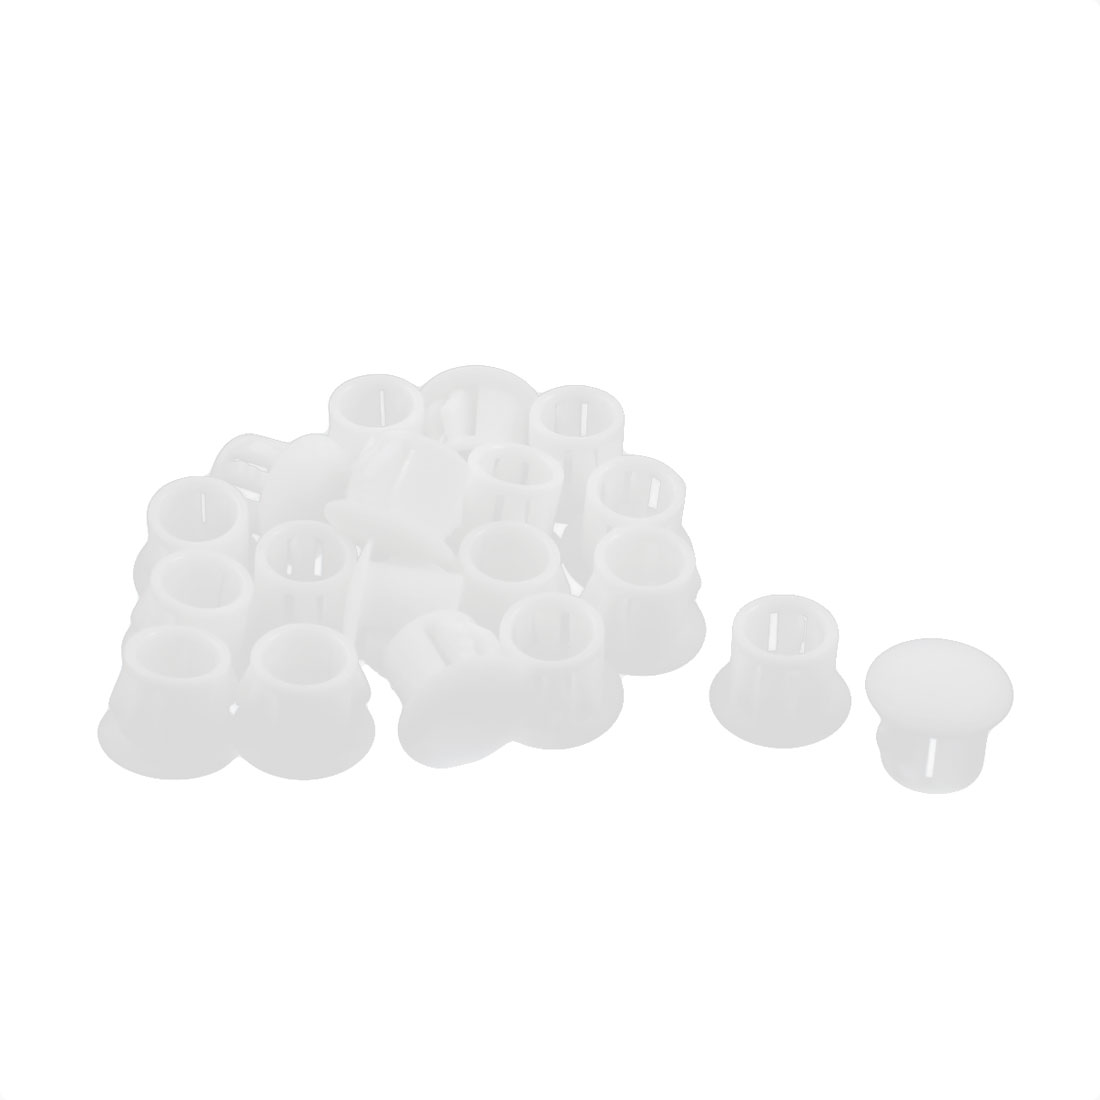 20 Pcs SKT-10 Round White Plastic Insulated Snap in Blank Locking Hole Fastener Harness Cover 9.5mm